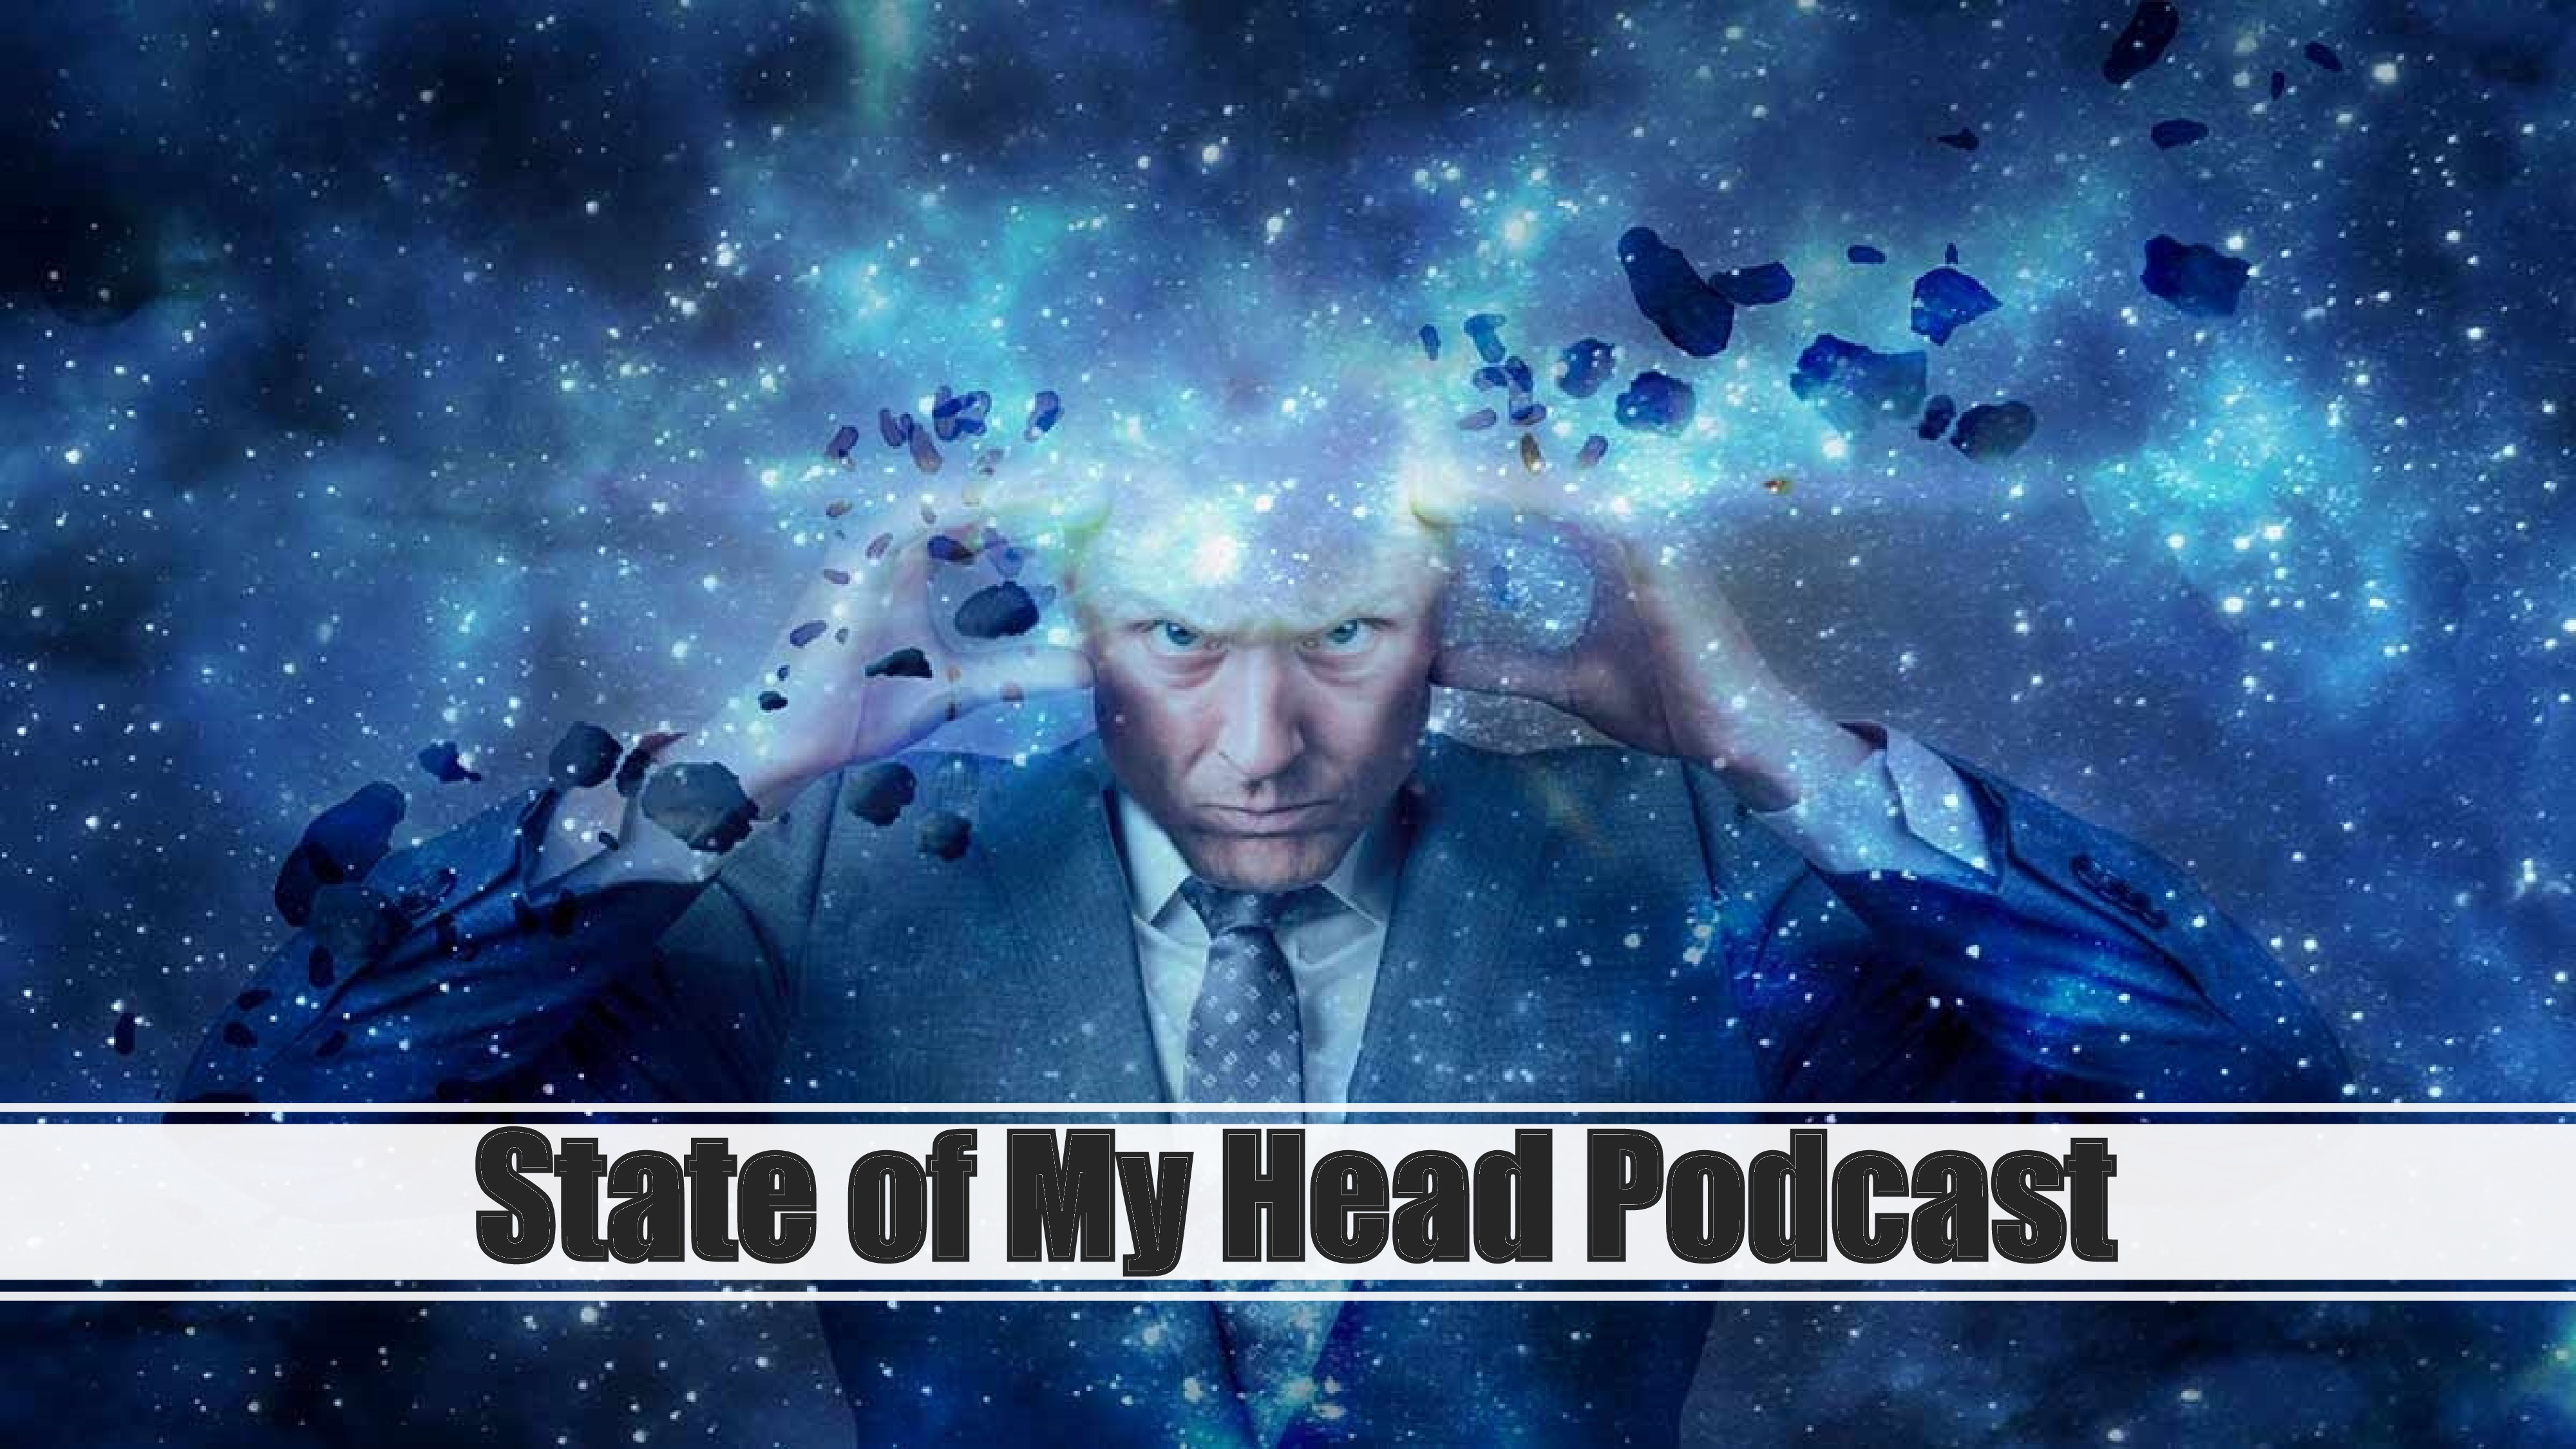 State of My Head Podcast